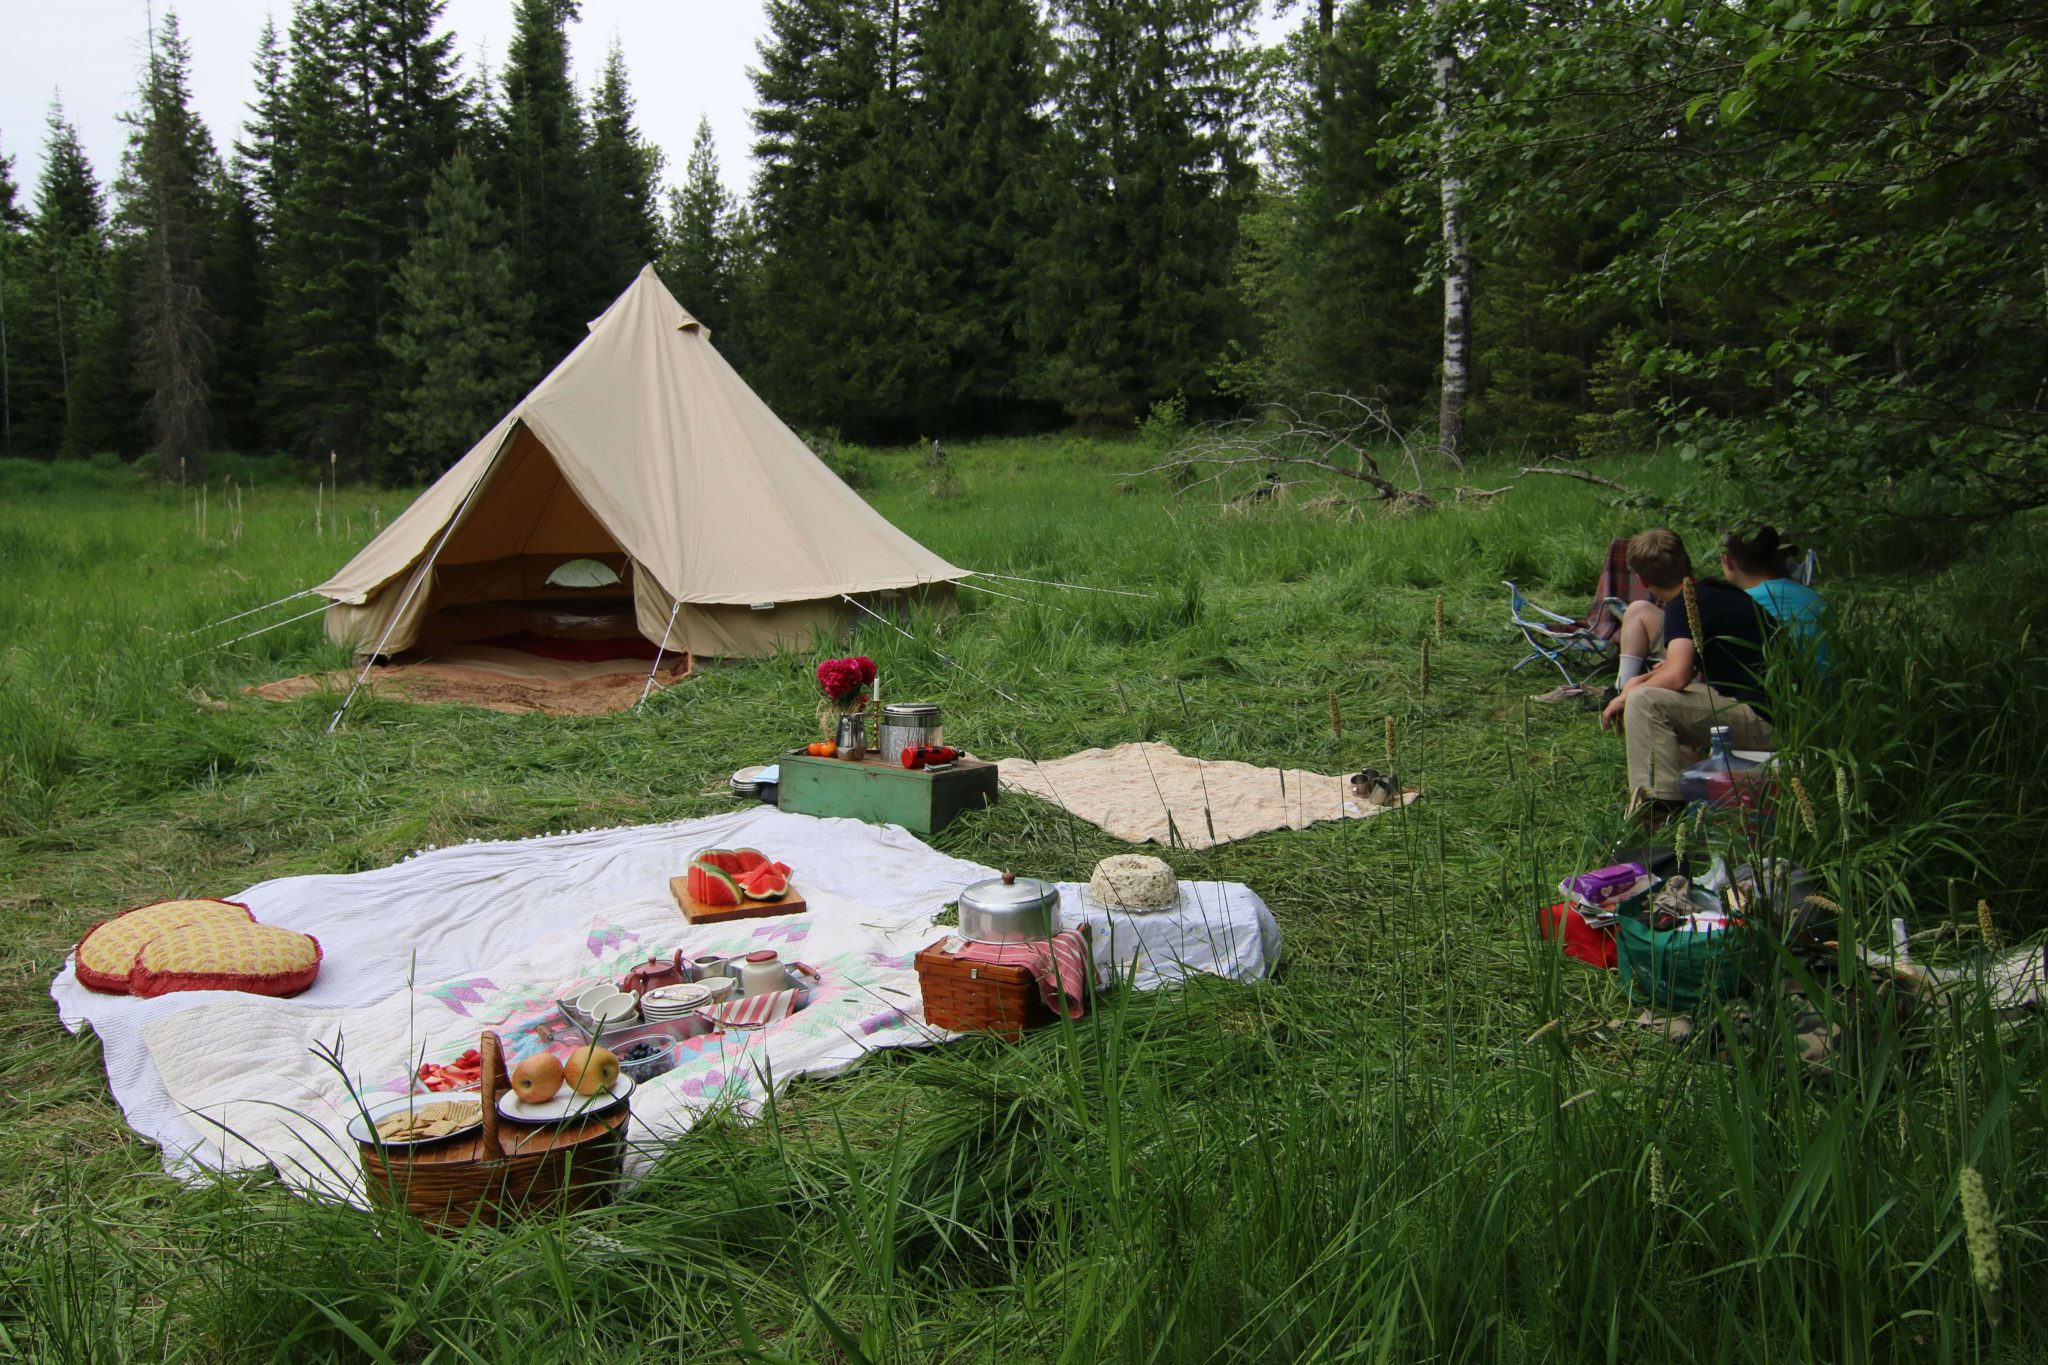 Picnicking, a Canvas Bell Tent, and the lush, beautiful outdoors of the Pacific Northwest!